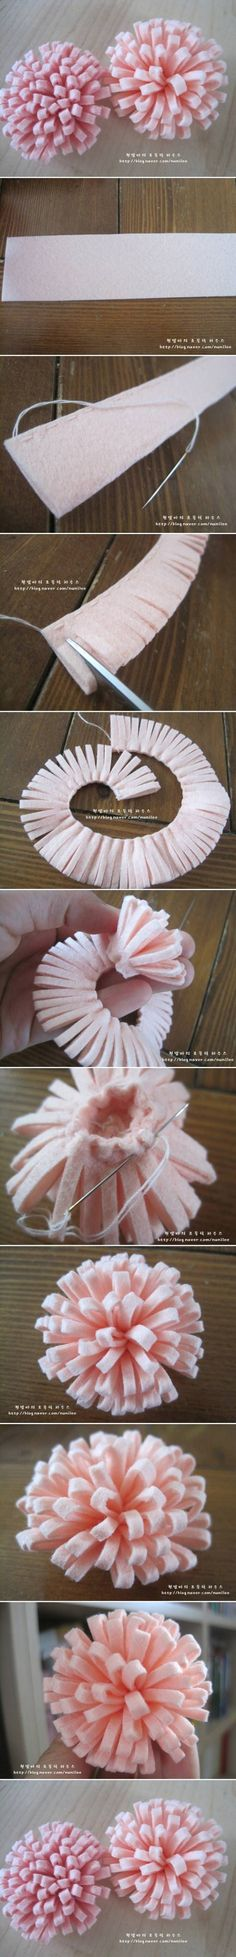 DIY Simple Easy Felt Flower by jeanette